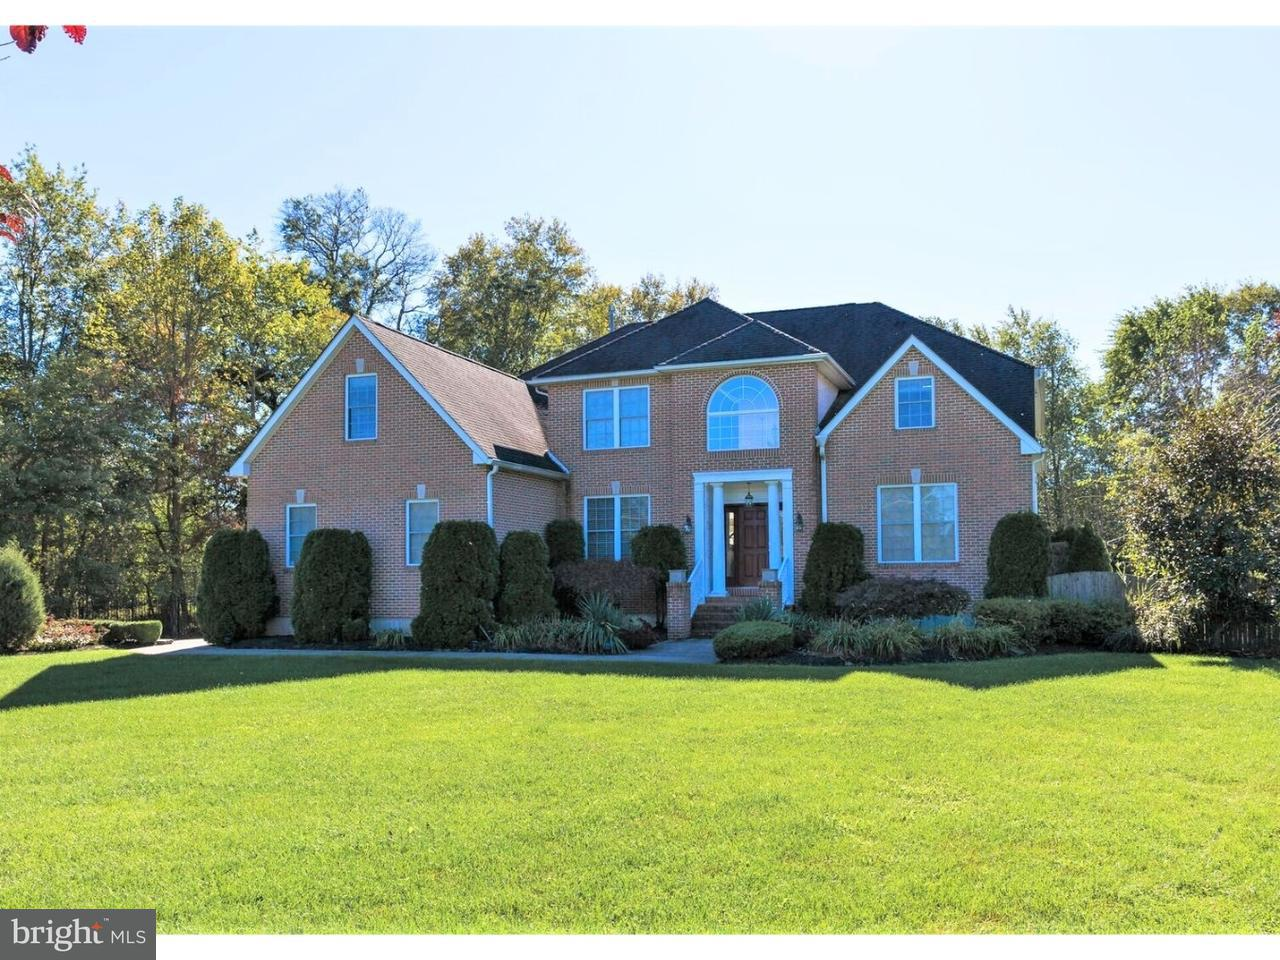 Single Family Home for Sale at 285 MOUNT LAUREL Road Mount Laurel, New Jersey 08054 United States